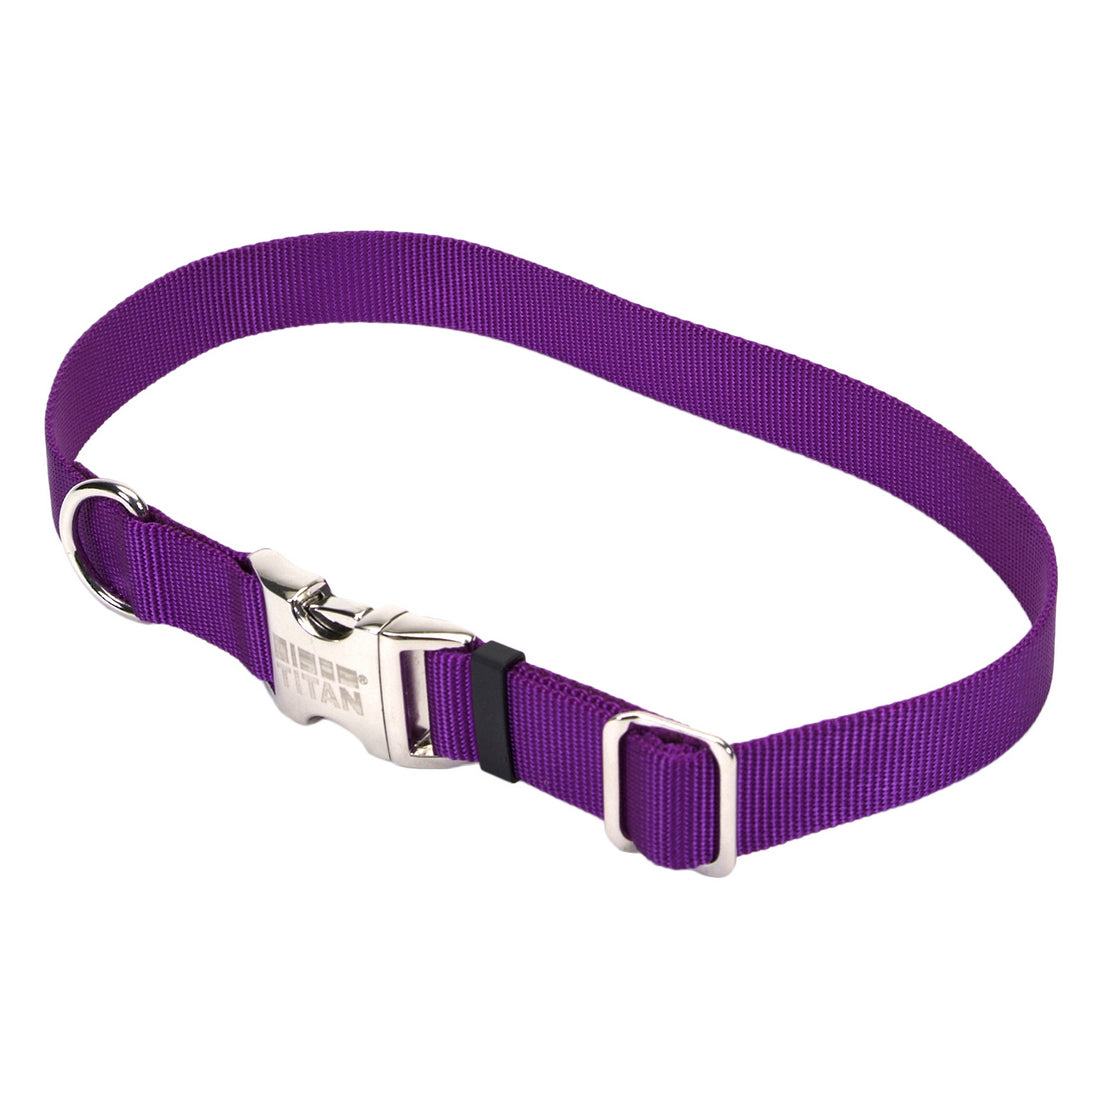 Coastal Adjustable Nylon Collar with Metal Buckle Medium Purple